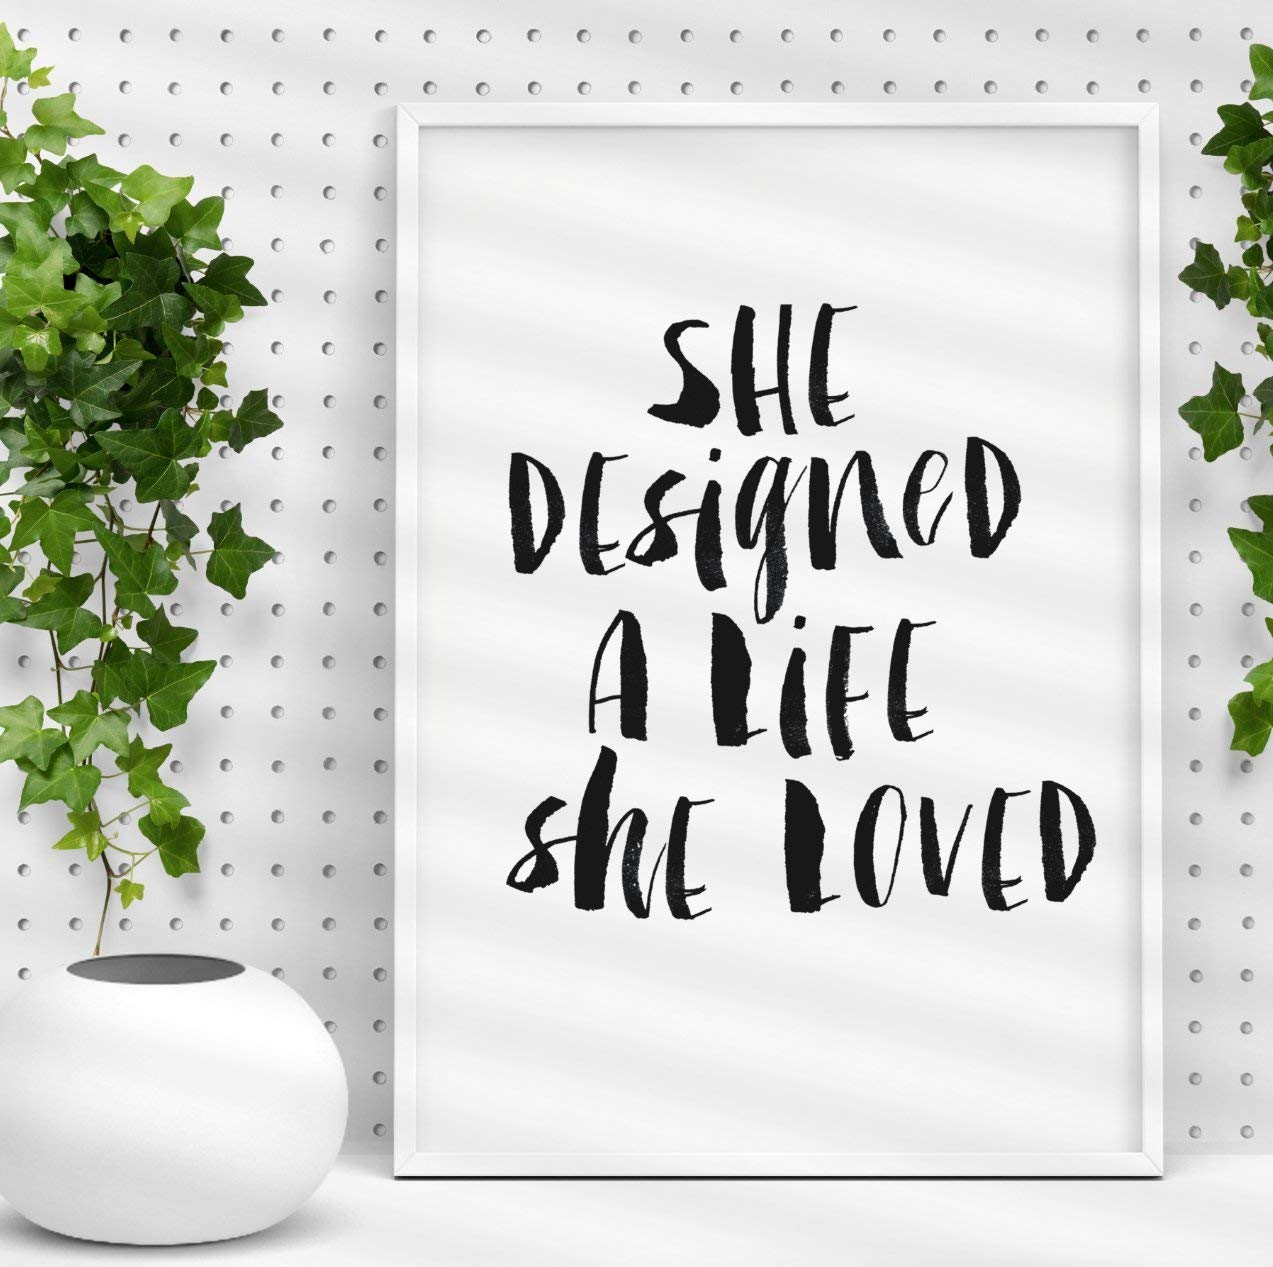 She Designed a Life She Loved watercolor Typography Poster Wall Decor Motivational Print Inspirational Poster Home Decor